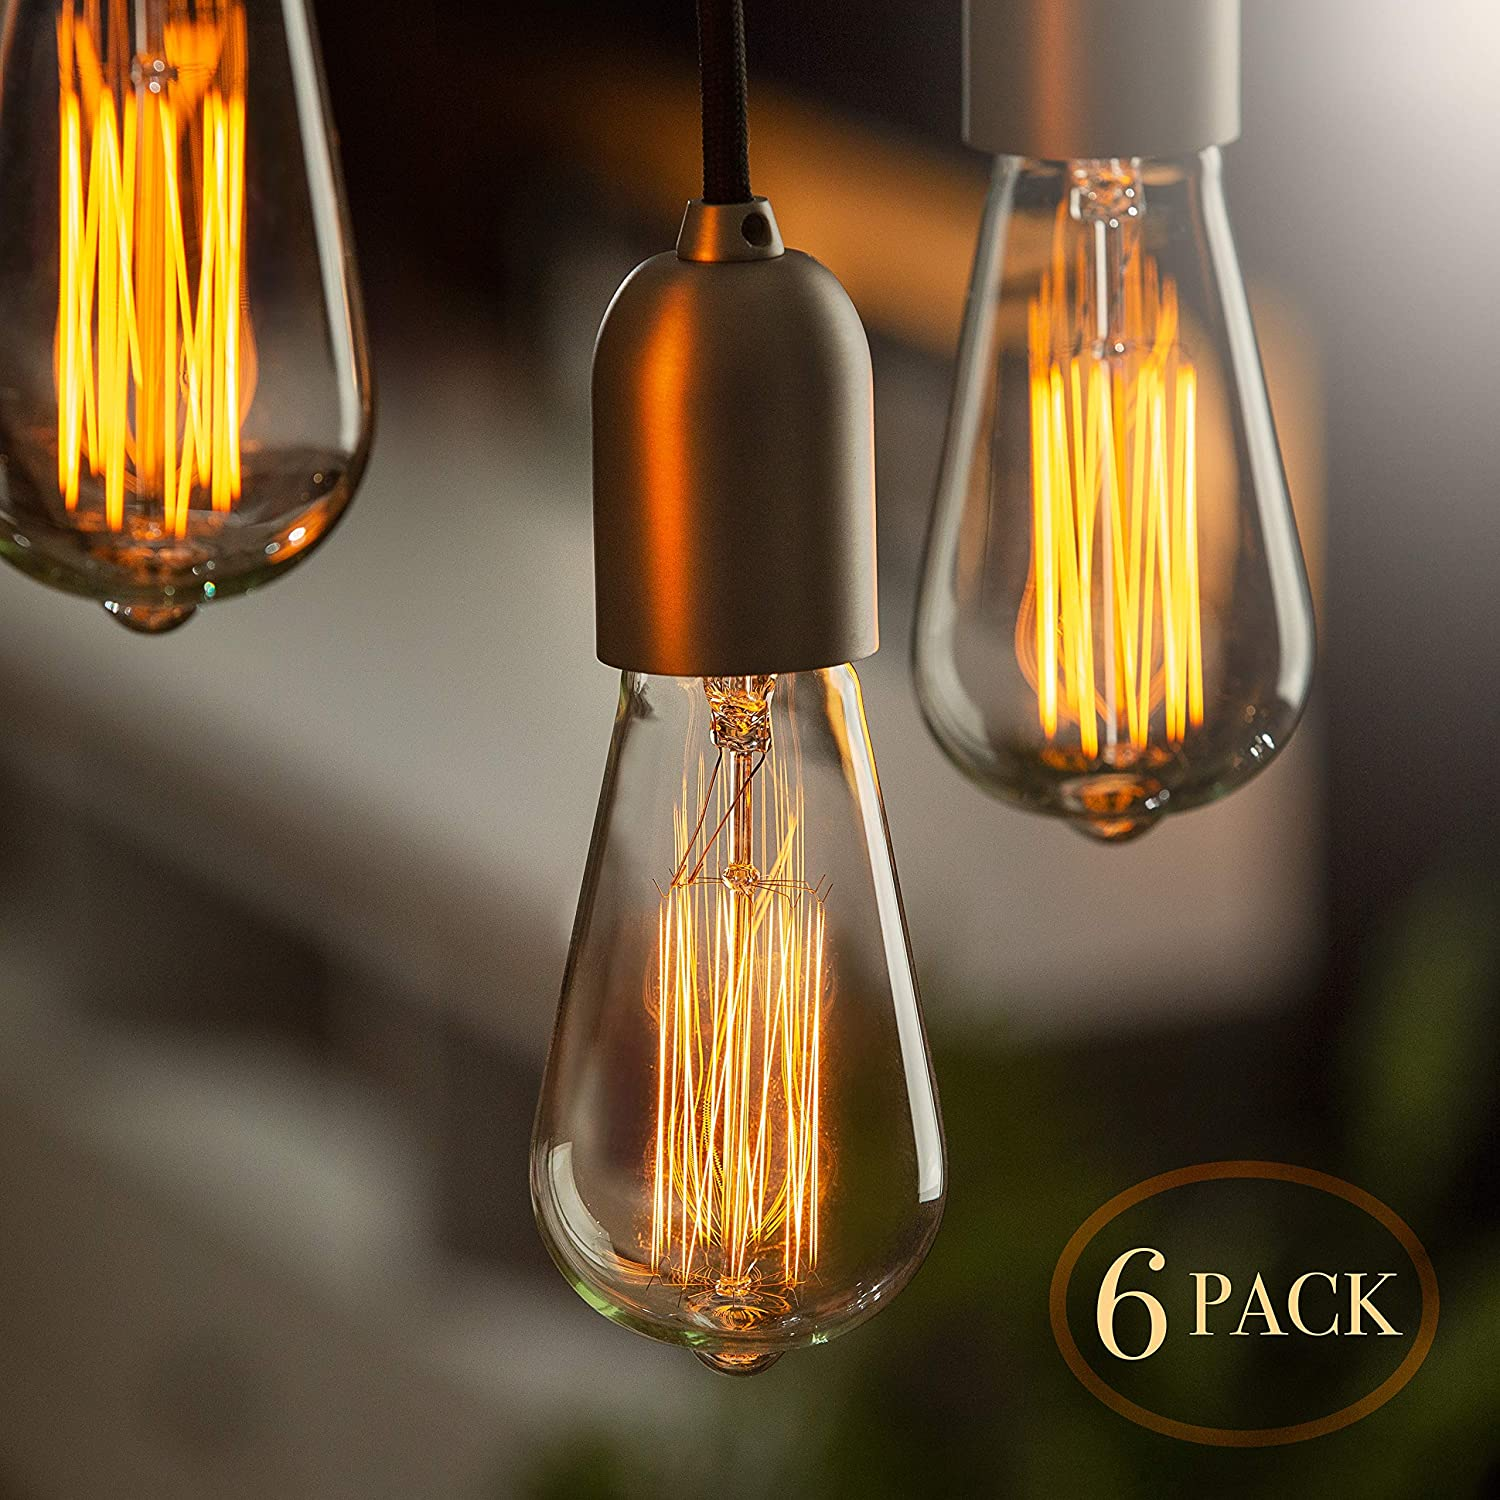 Edison bulb 6 pack vintage incandescent light bulbs for home office lighting 60 watt light bulbs for vintage lamps and fixtures clear glass